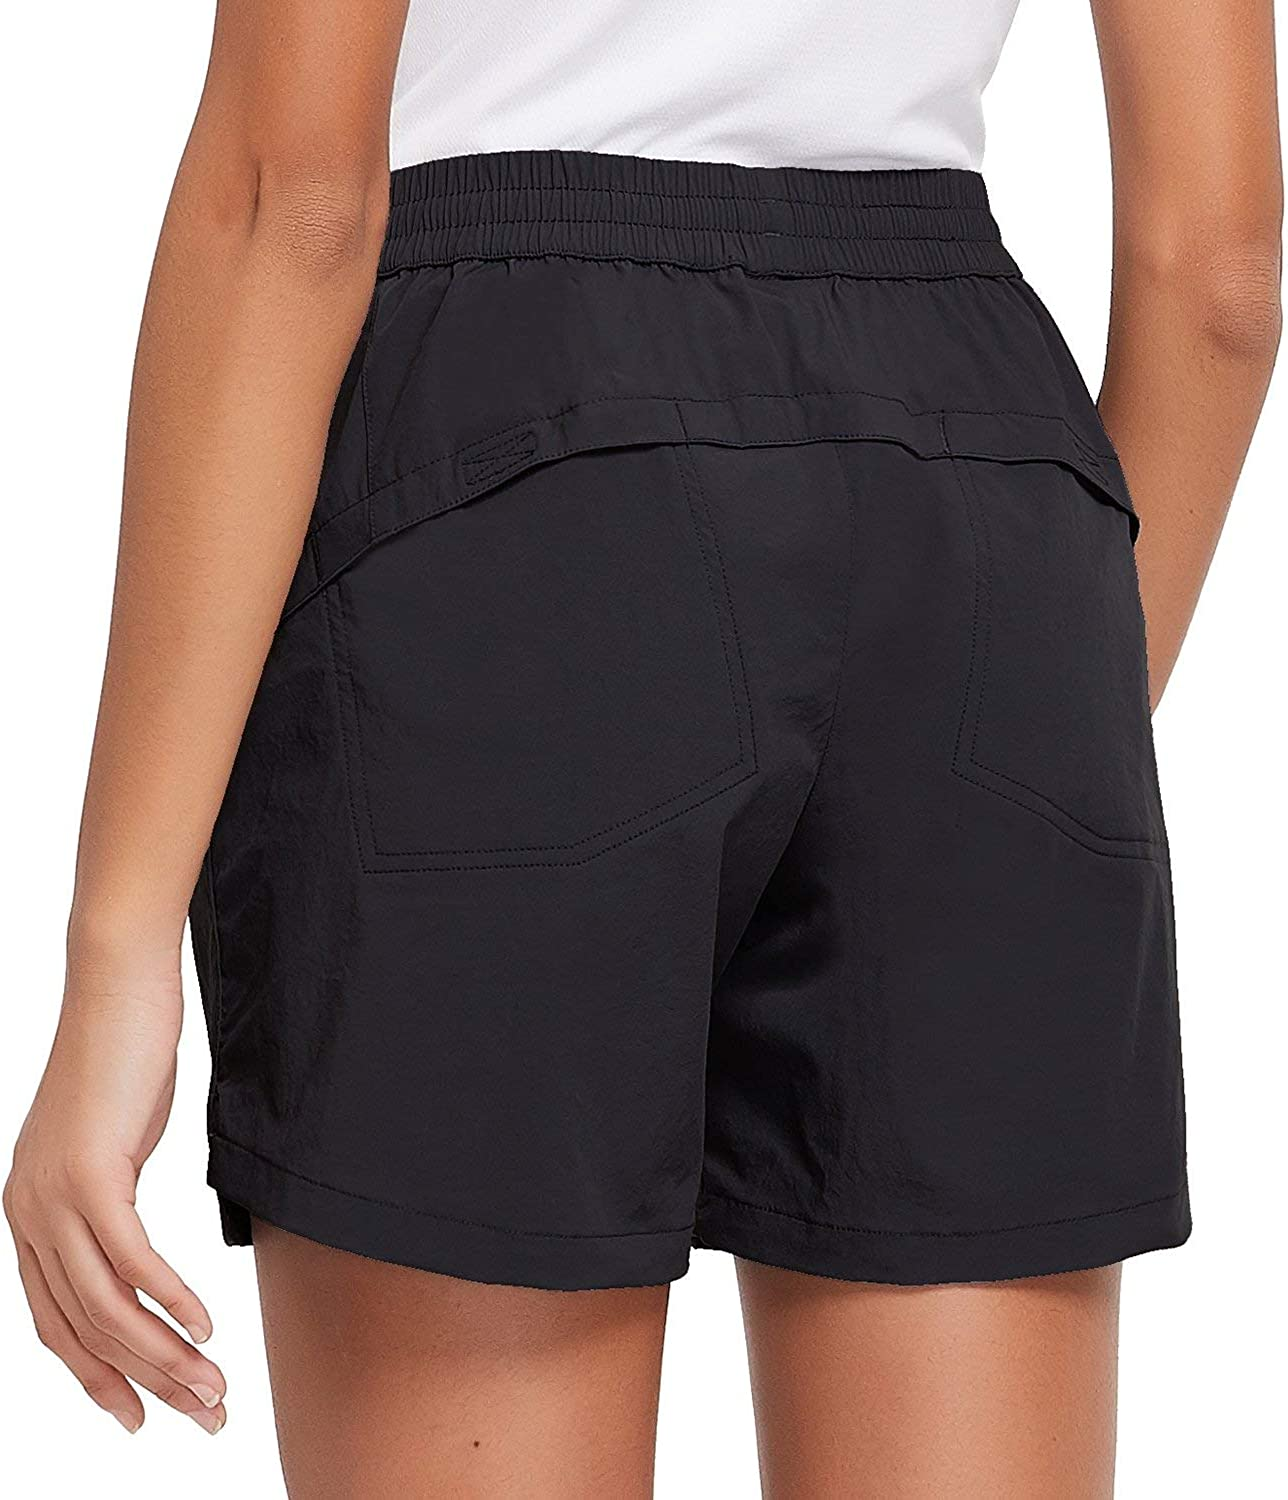 """BALEAF Women's 5"""" Athletic Shorts Quick Dry Lightweight for Hiking, Workout, Running with Zipper Pocket UPF 50+ : Clothing"""